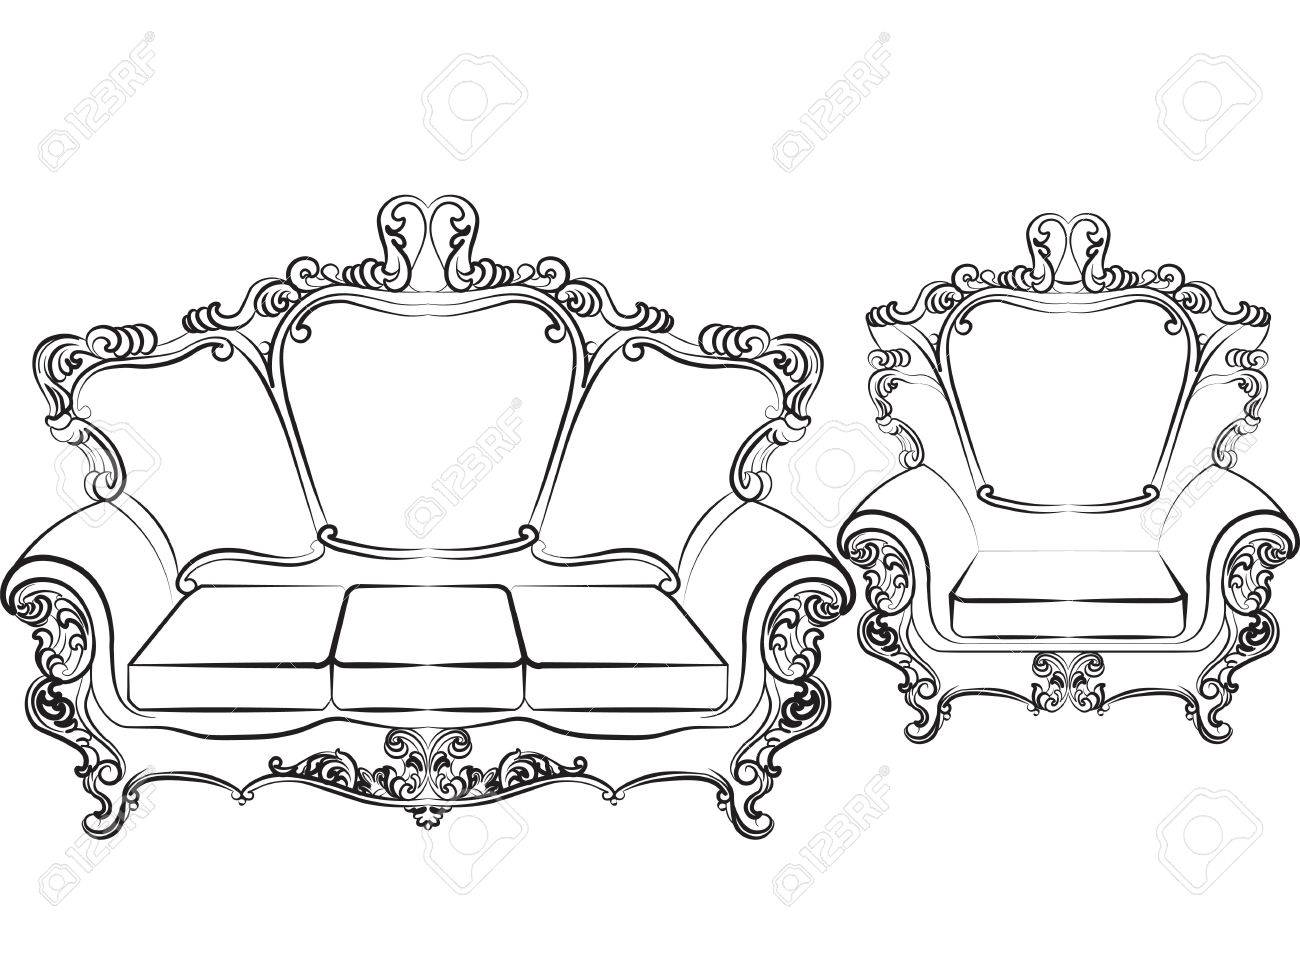 Royal Sofa And Armchair Set In Baroque Style With Damask Luxurious  Ornaments. Vector Stock Vector